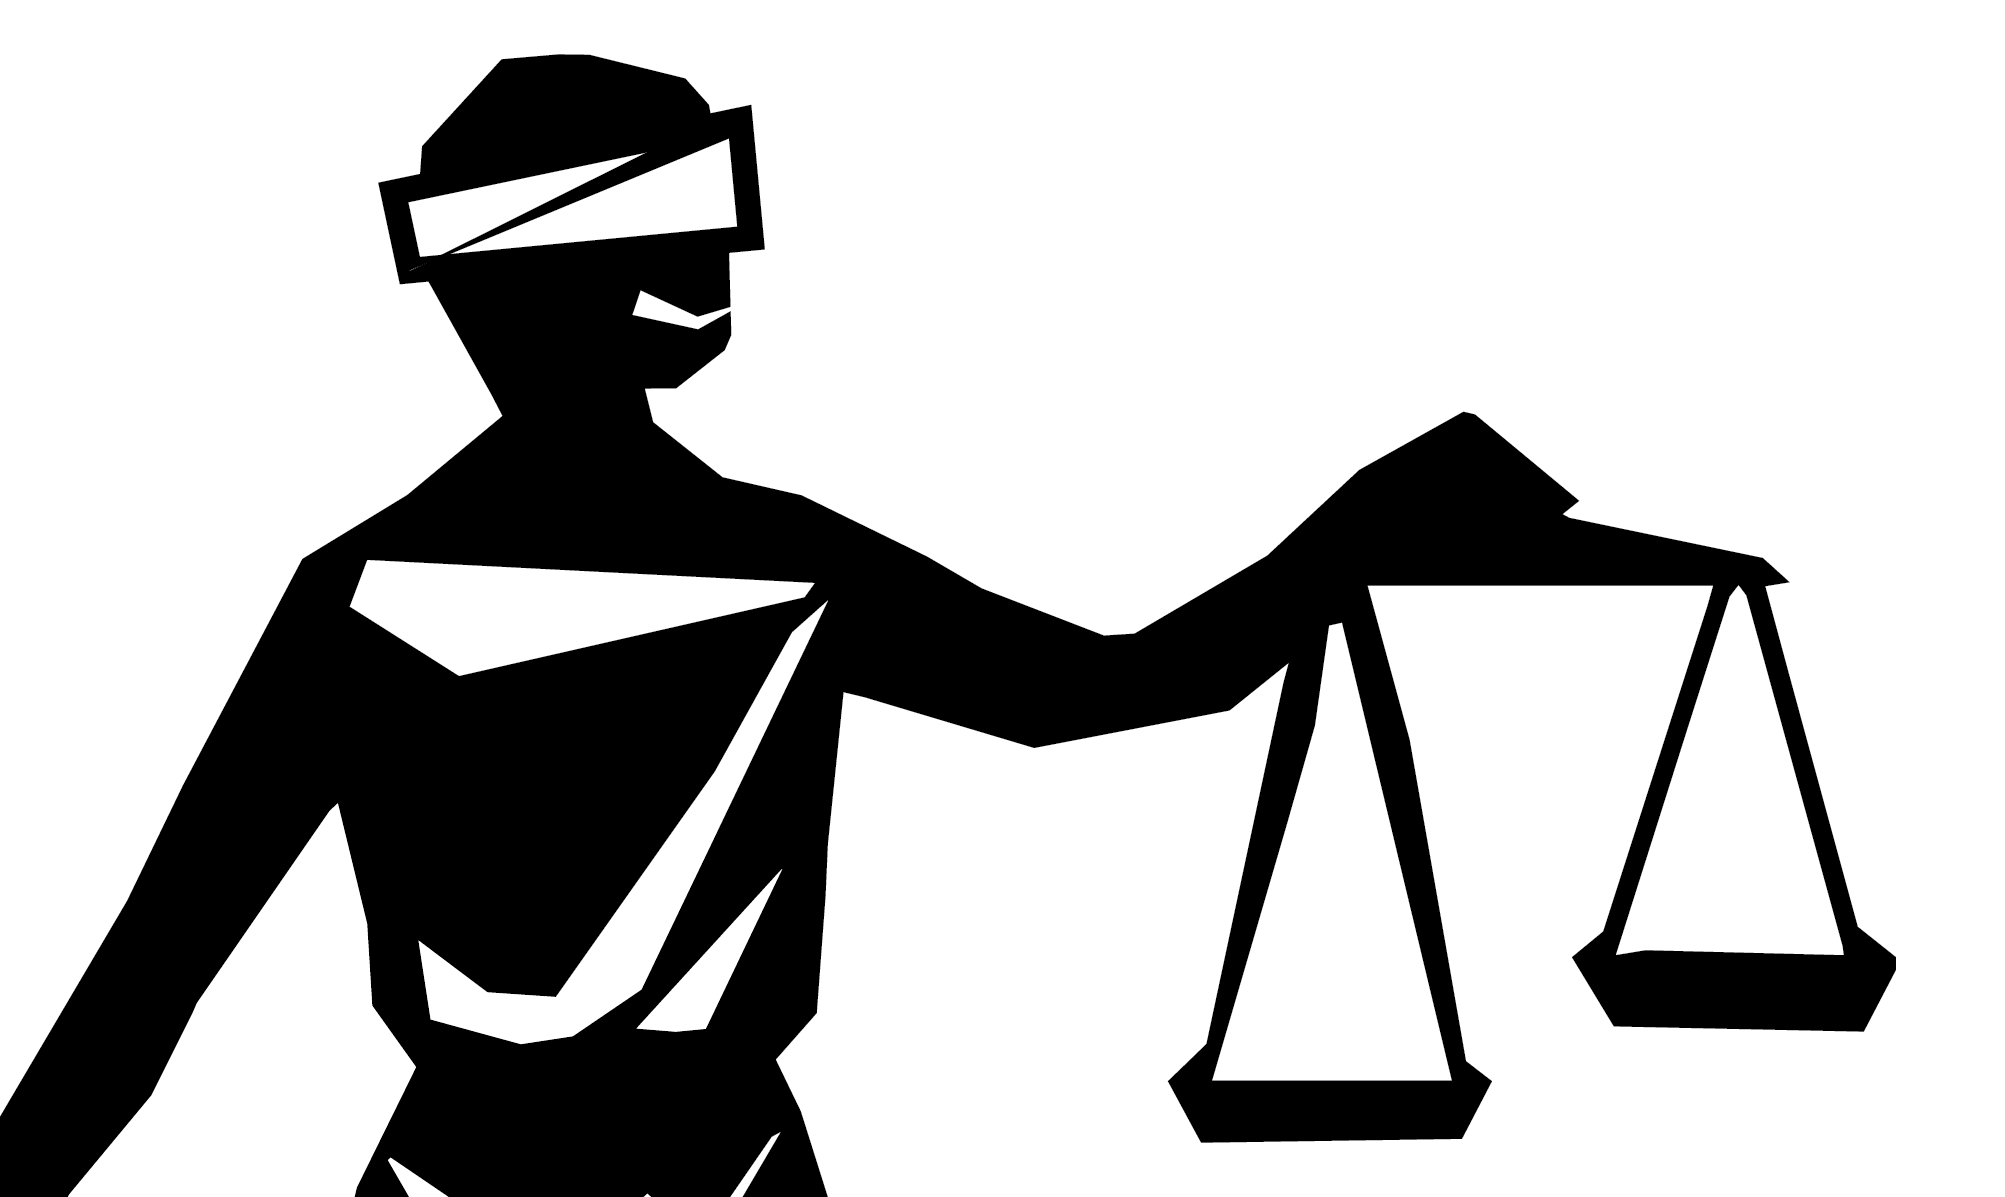 Op-Ed: In Defense of Justice